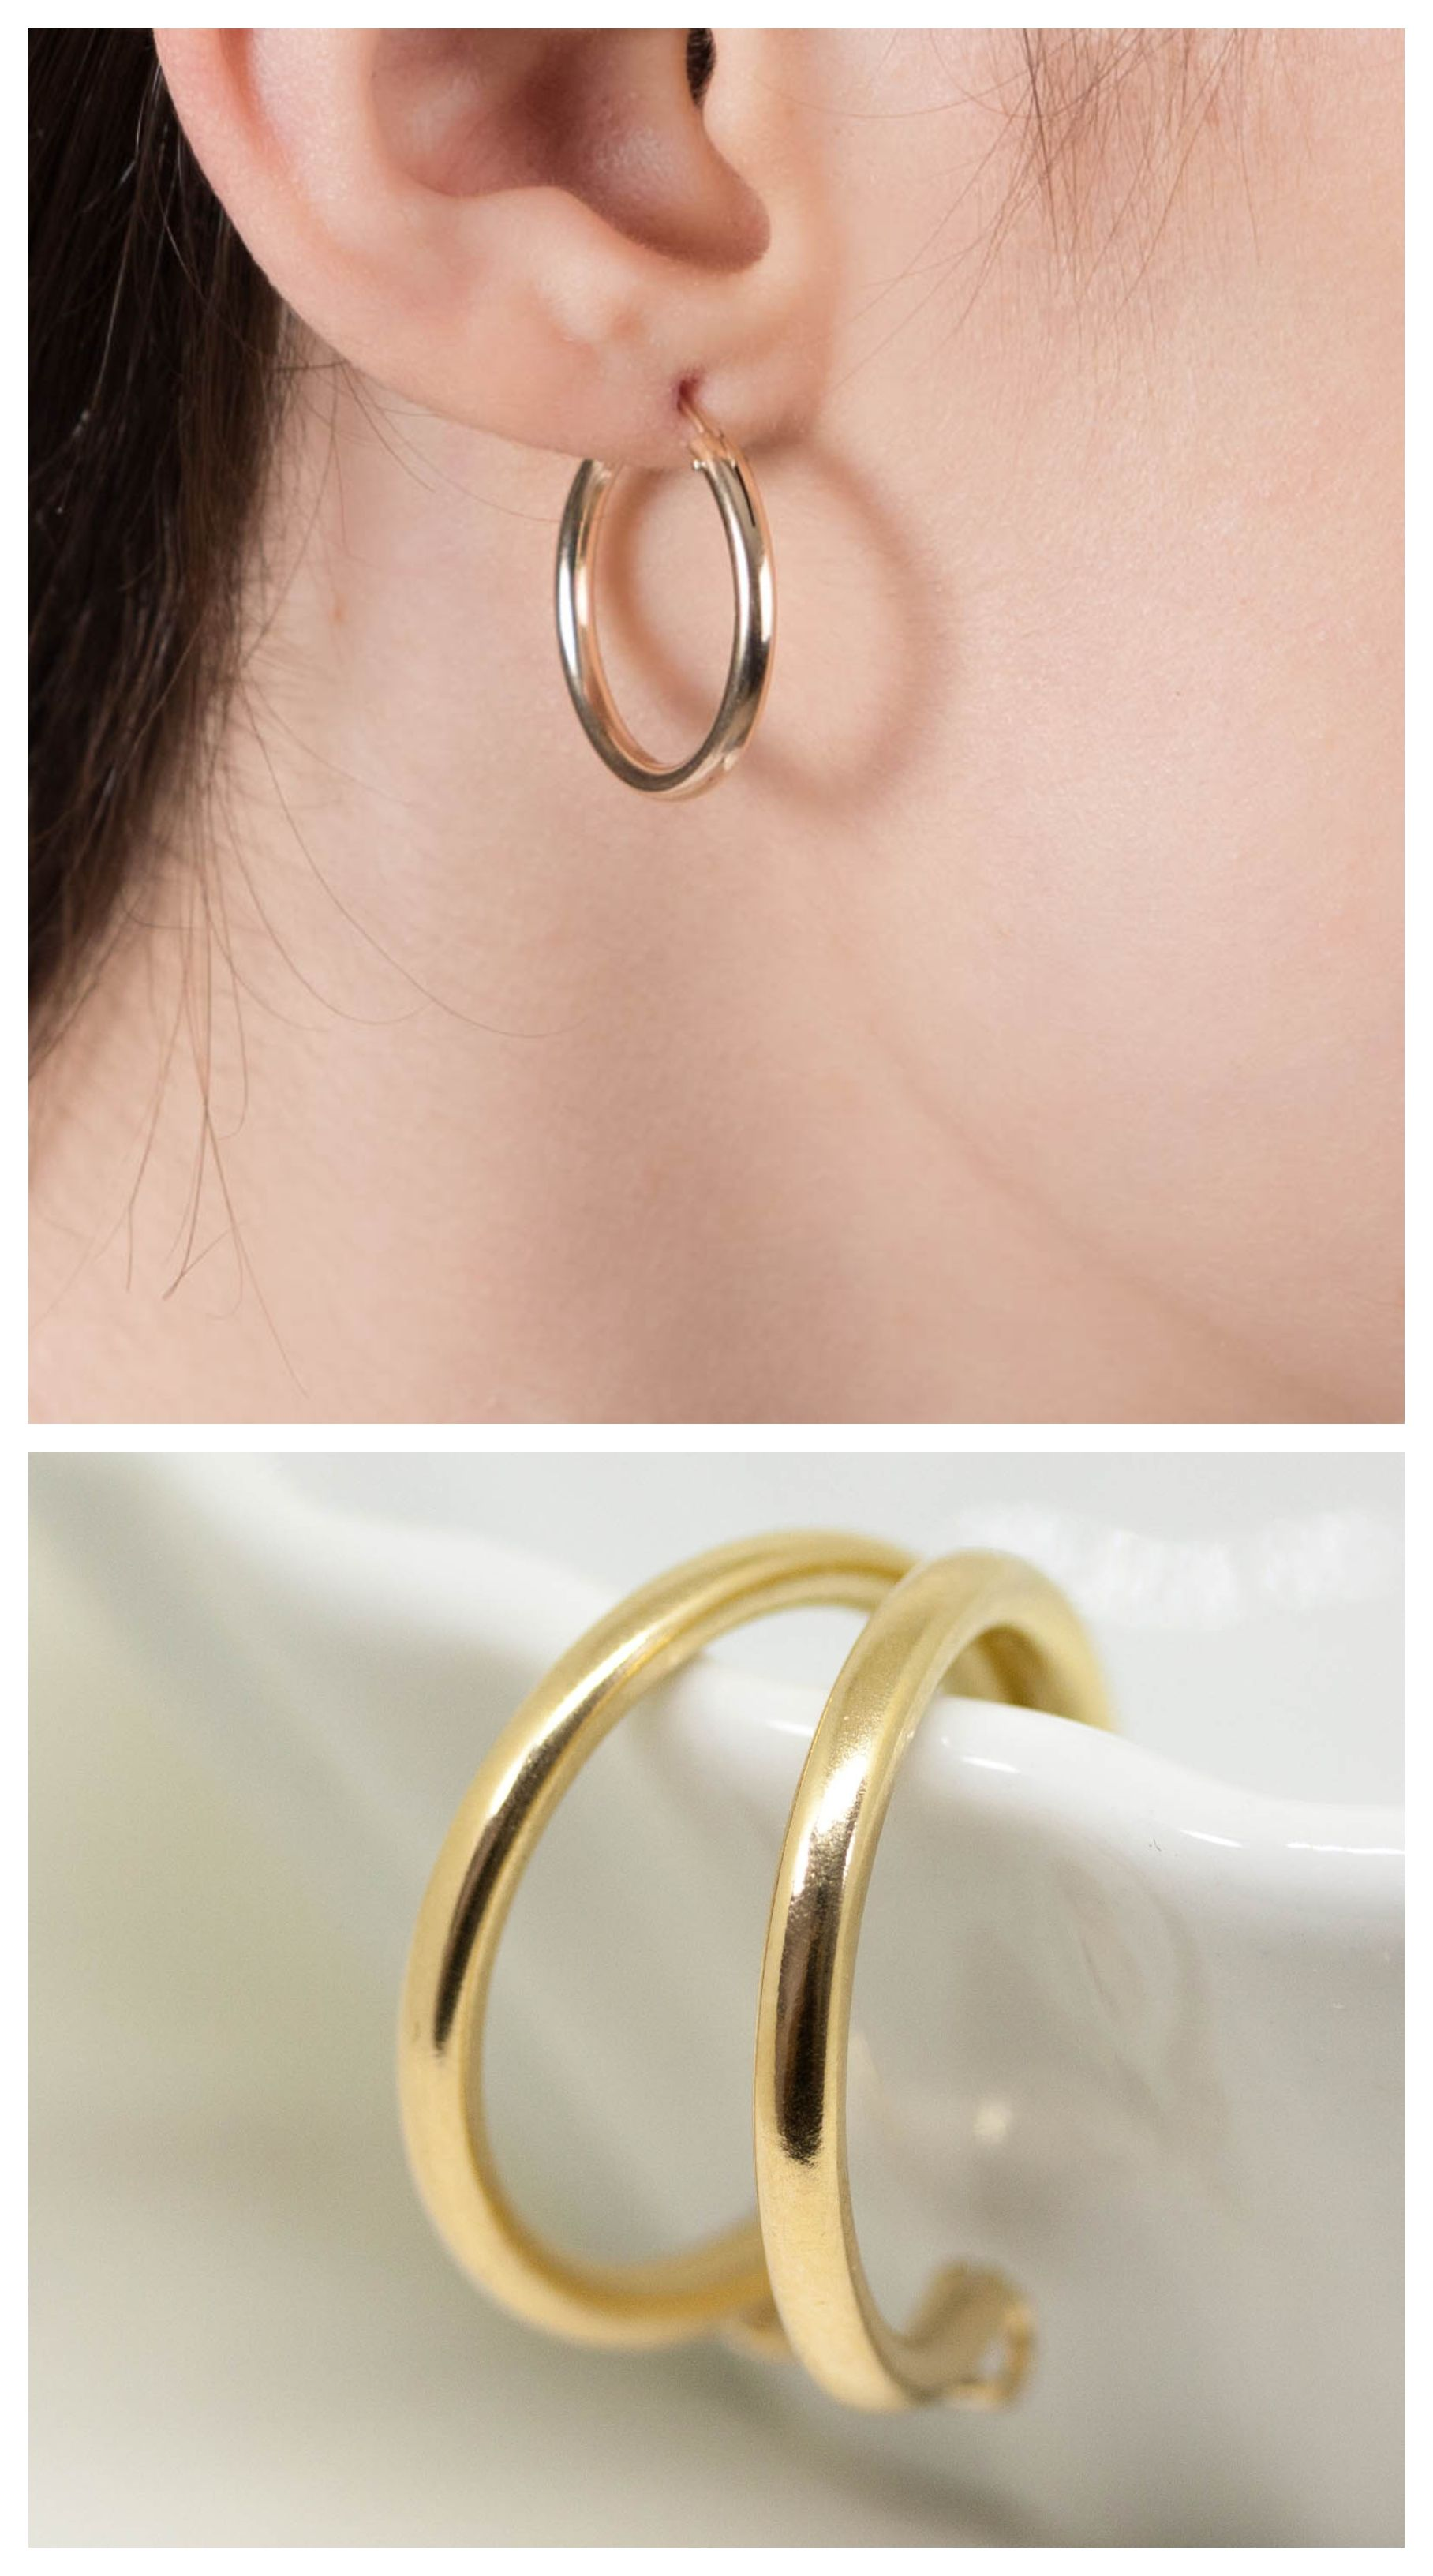 Goldfilled Hoops 14k Gold Filled Thick Hoop Earrings Minimalist Lightweight Everyday